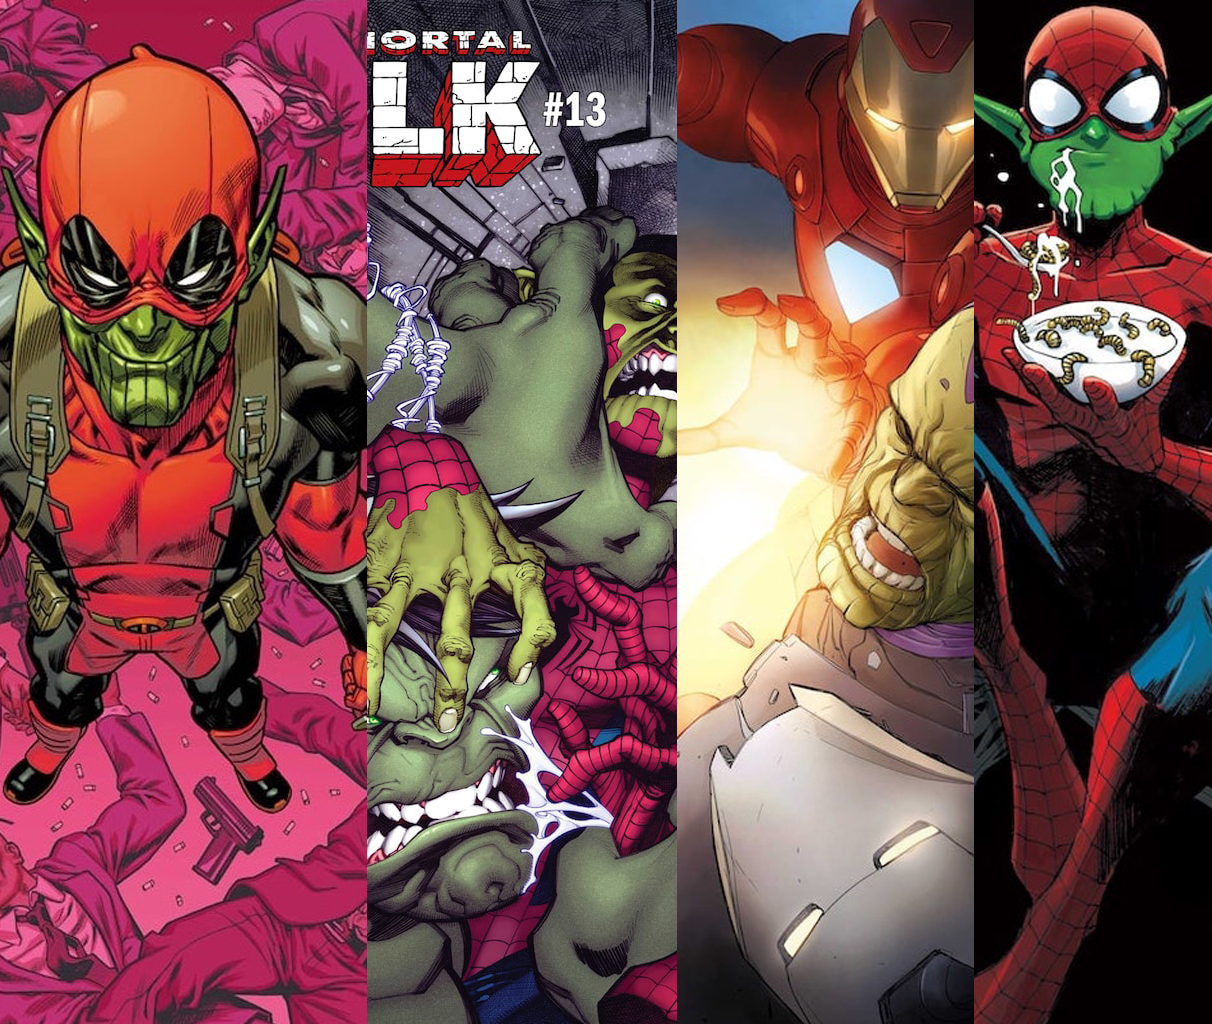 On the heels of 'Captain Marvel' the Skrulls invade the Marvel variant covers this February